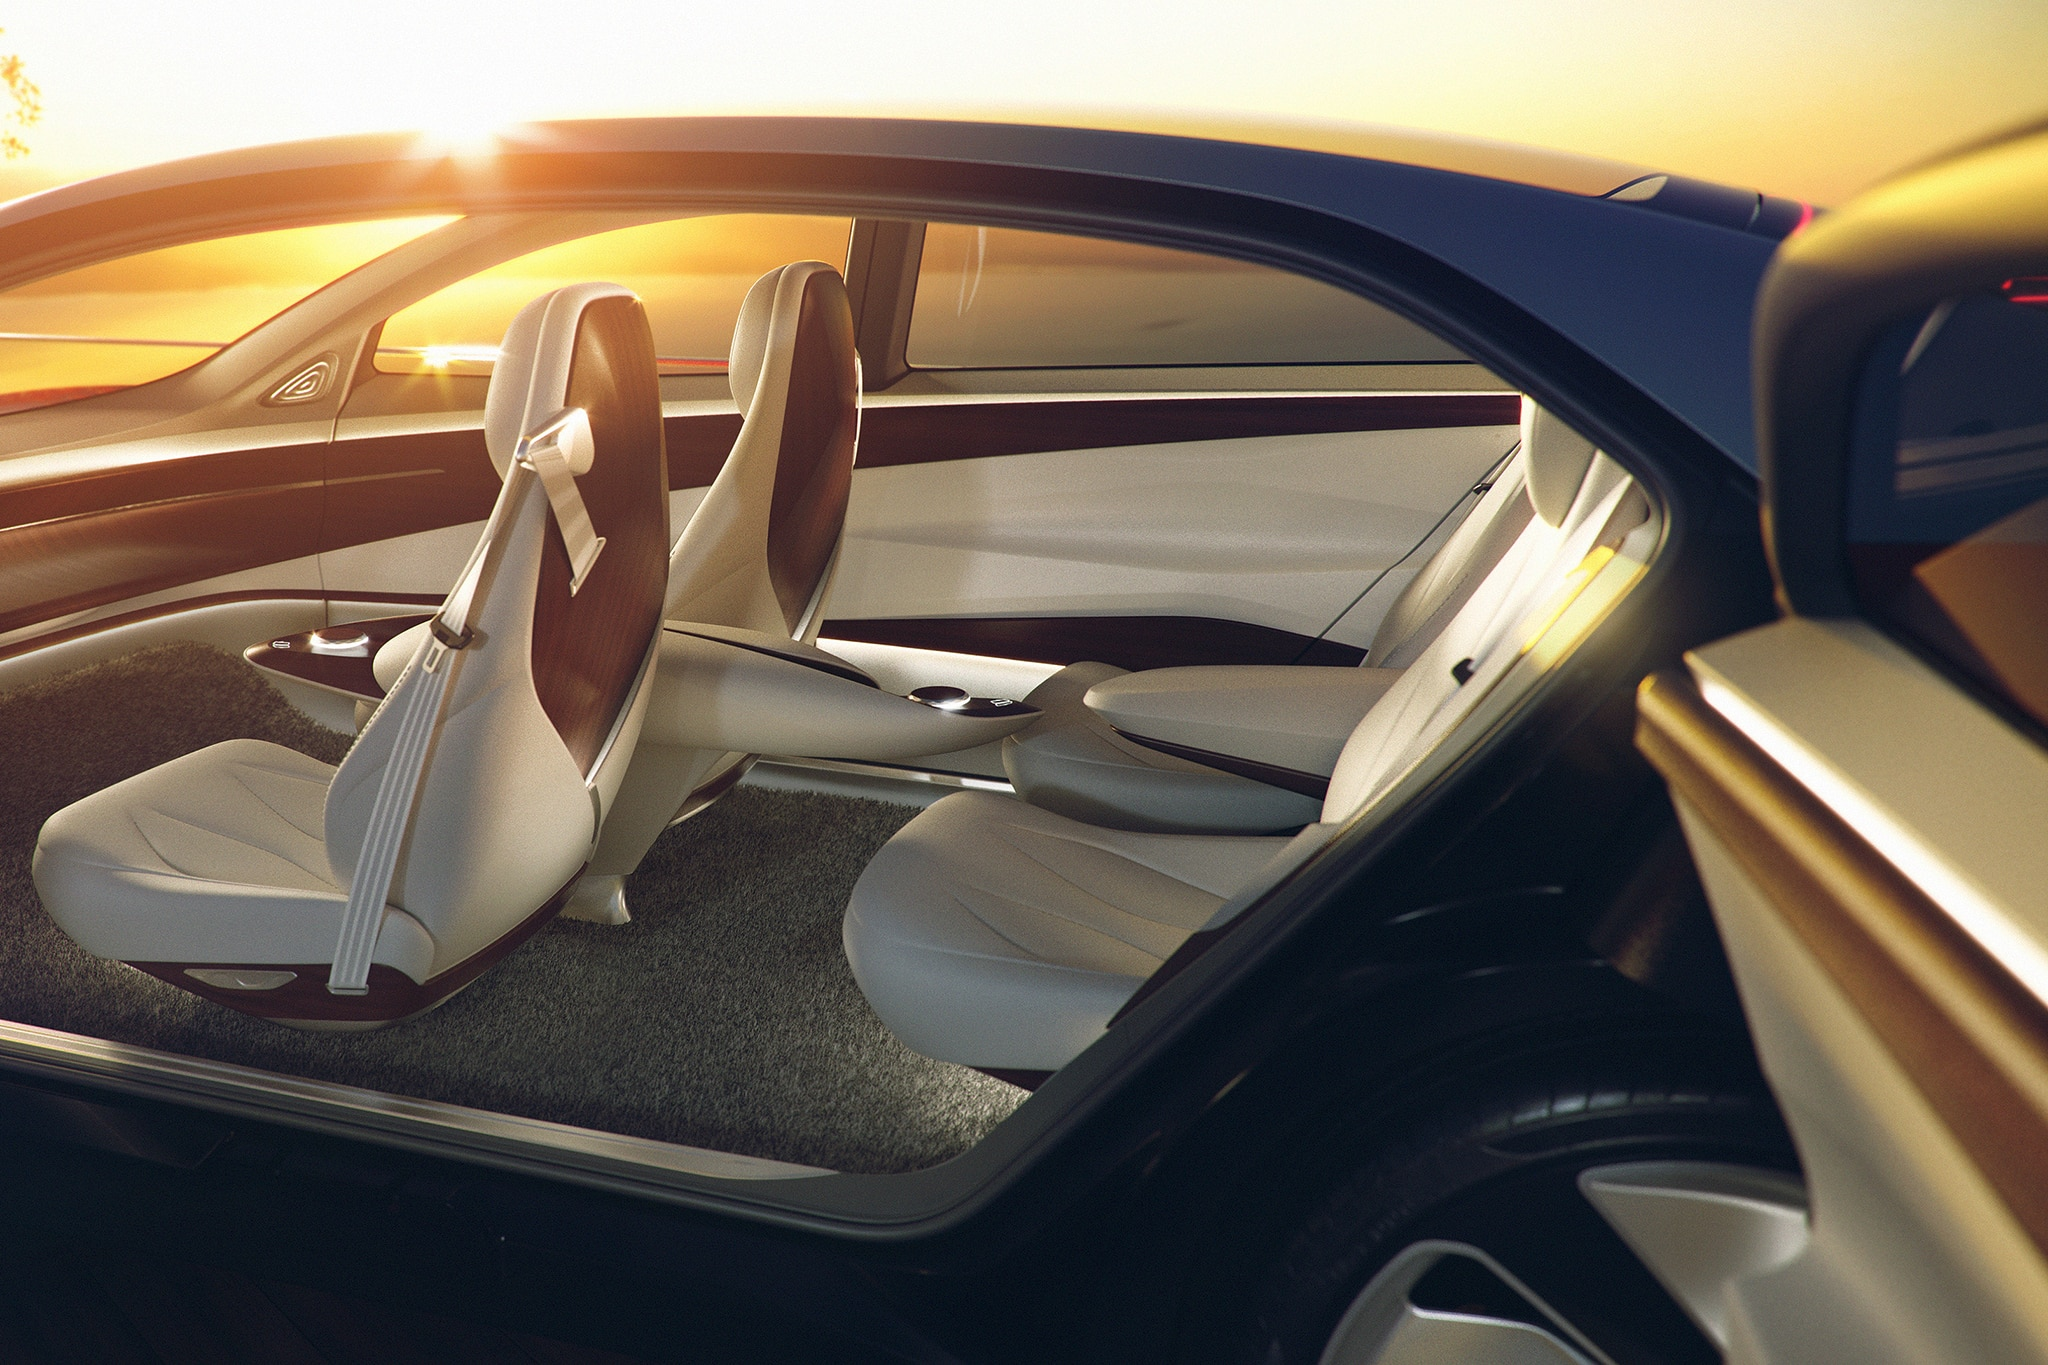 There\u0027s a white illuminated VW badge on the grille and suicide doors with no B-pillars blocking the entrance for getting in and out of the vehicle. & Futuristic Volkswagen I.D. Vizzion Concept Reveals Its Suicide Doors ...